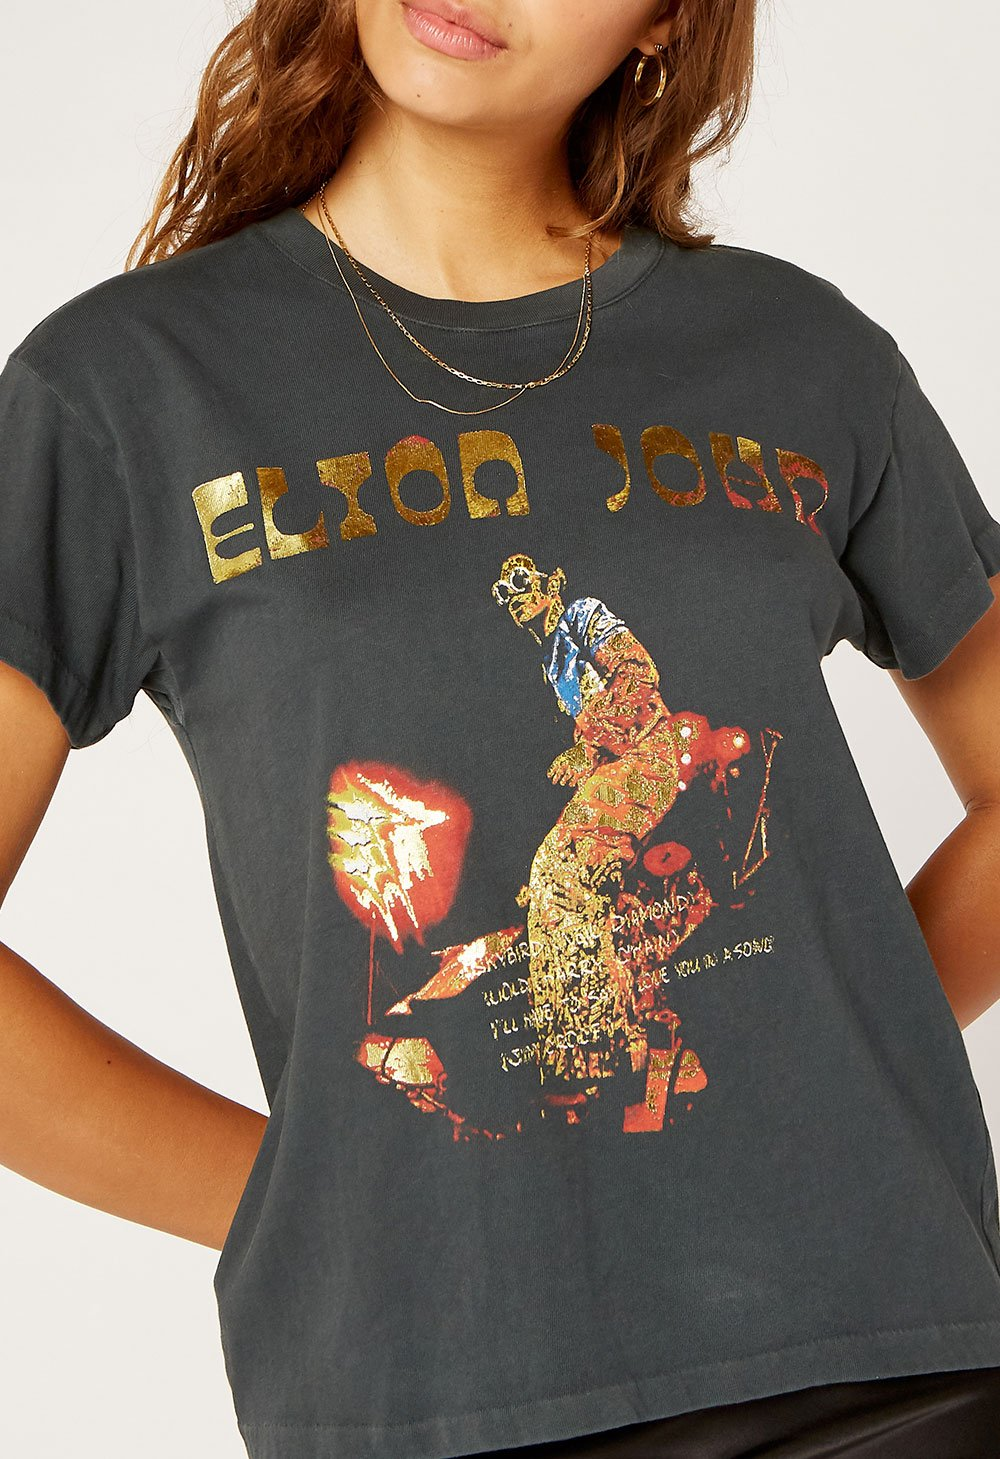 Elton John Bennie And The Jets Tour Tee